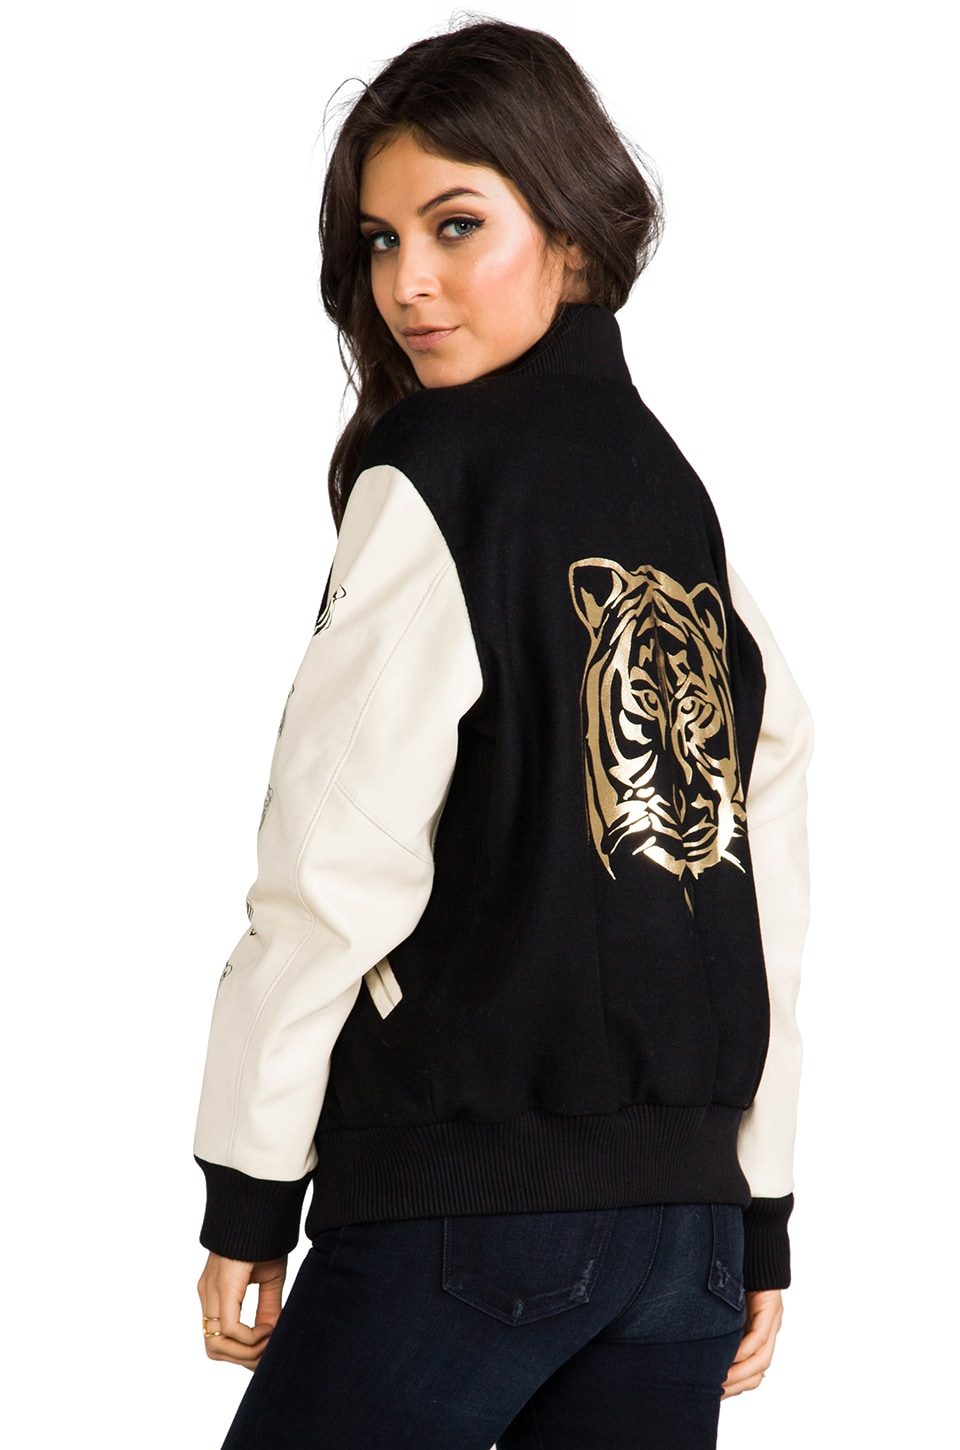 LOVE LEATHER Lover Letterman Jacket in Big Tiger